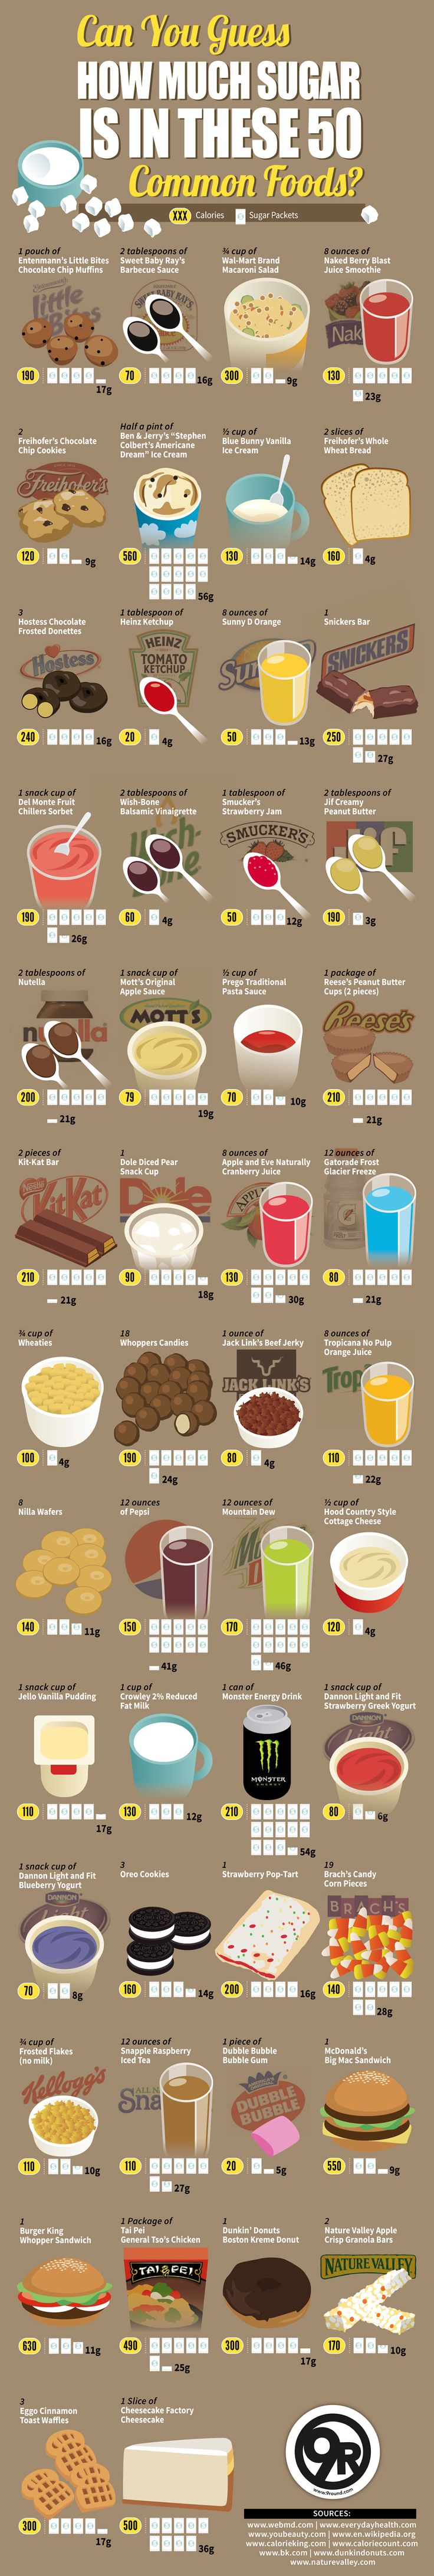 The Amount of Sugar Content in Common Foods – Chart